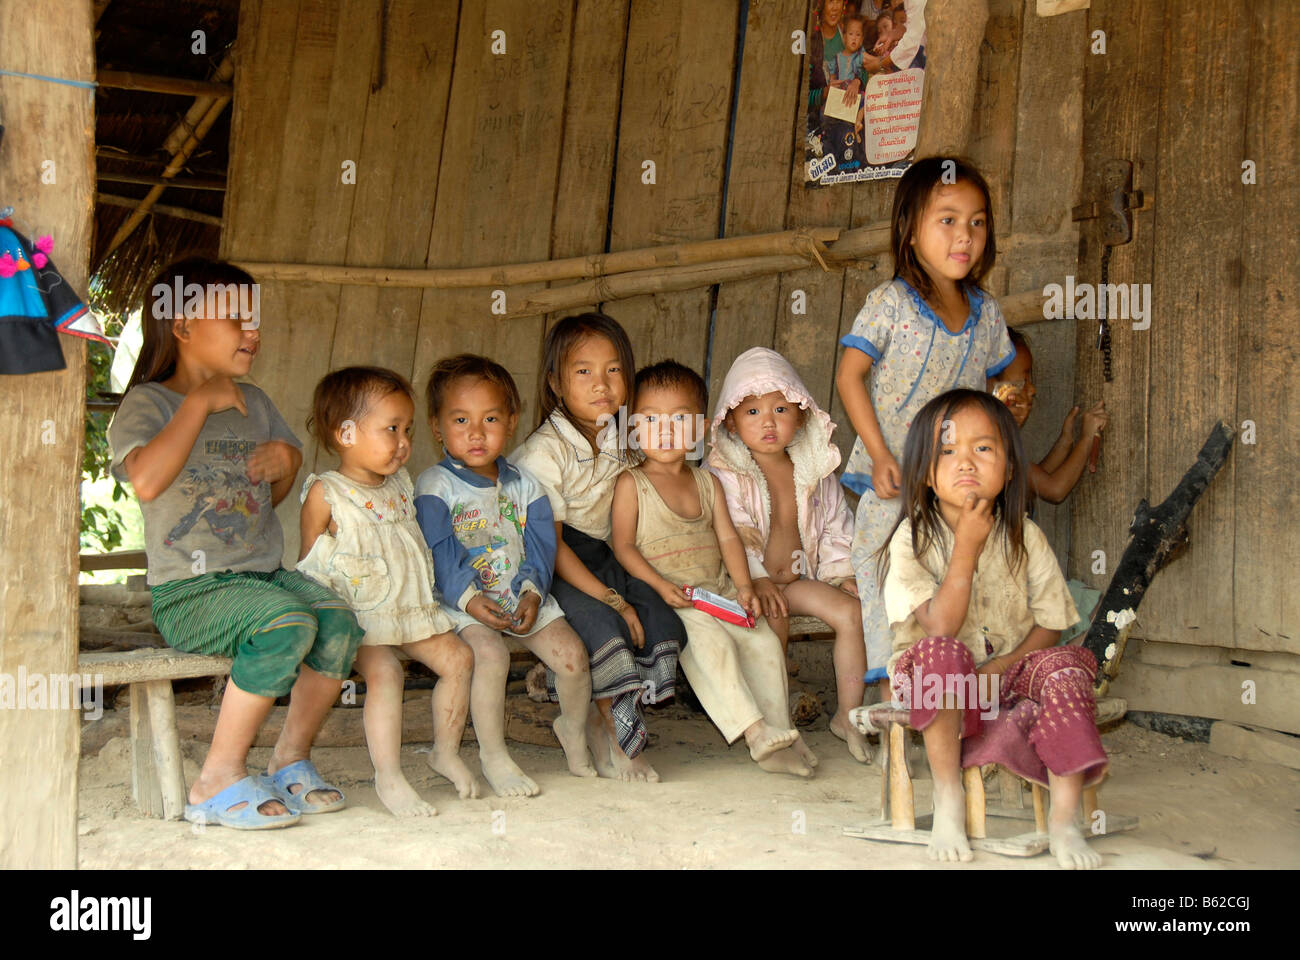 living in village Problems of village life: at present, the condition of the life of the people living in villages is gloomy the problems of our villagers are many and varied.